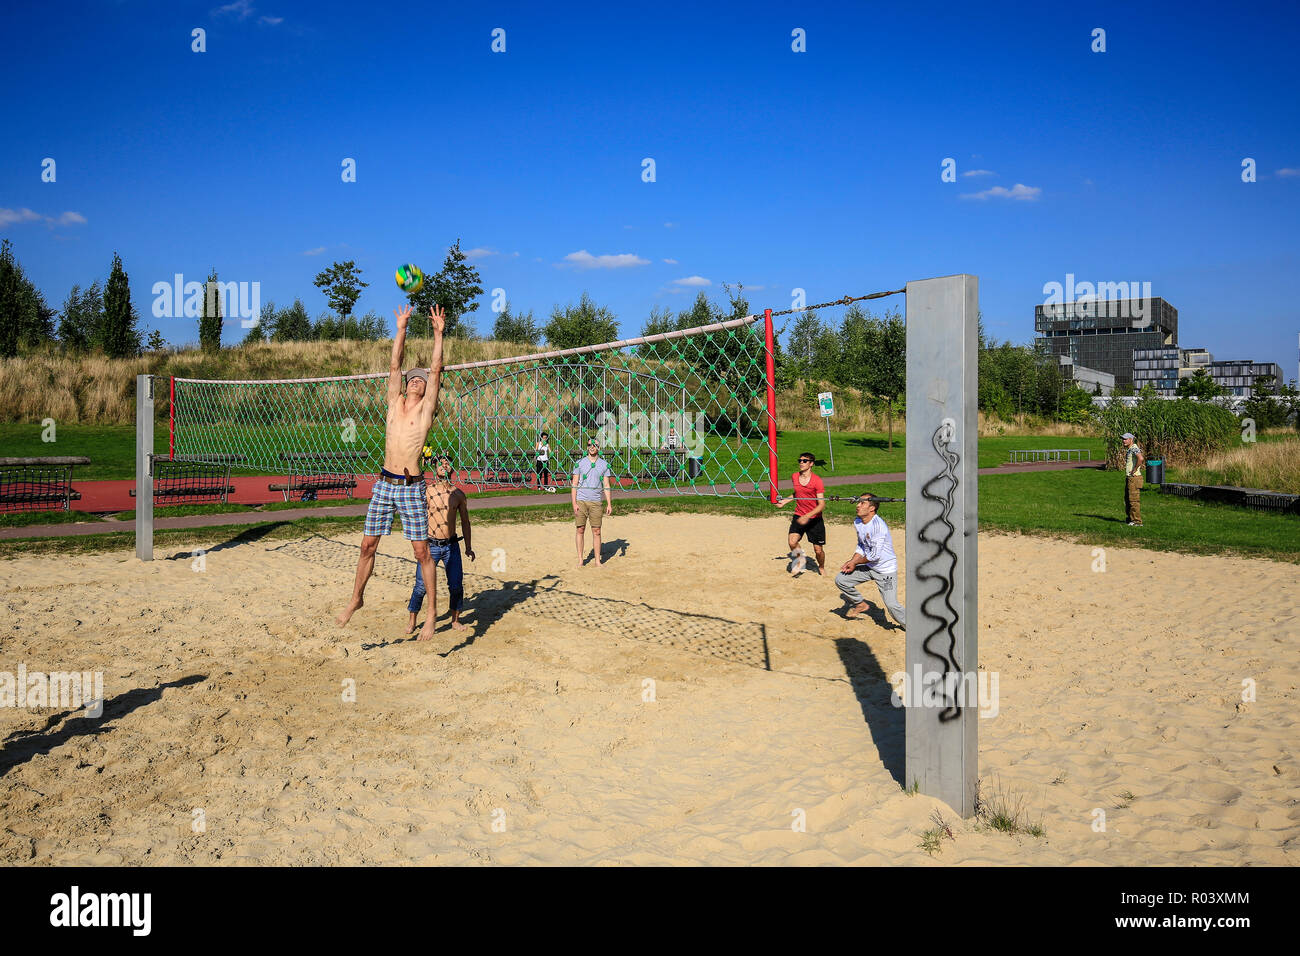 Essen, Ruhrgebiet, Germany, Krupp-Park, beach volleyball, urban development project Krupp-Guertel Stock Photo